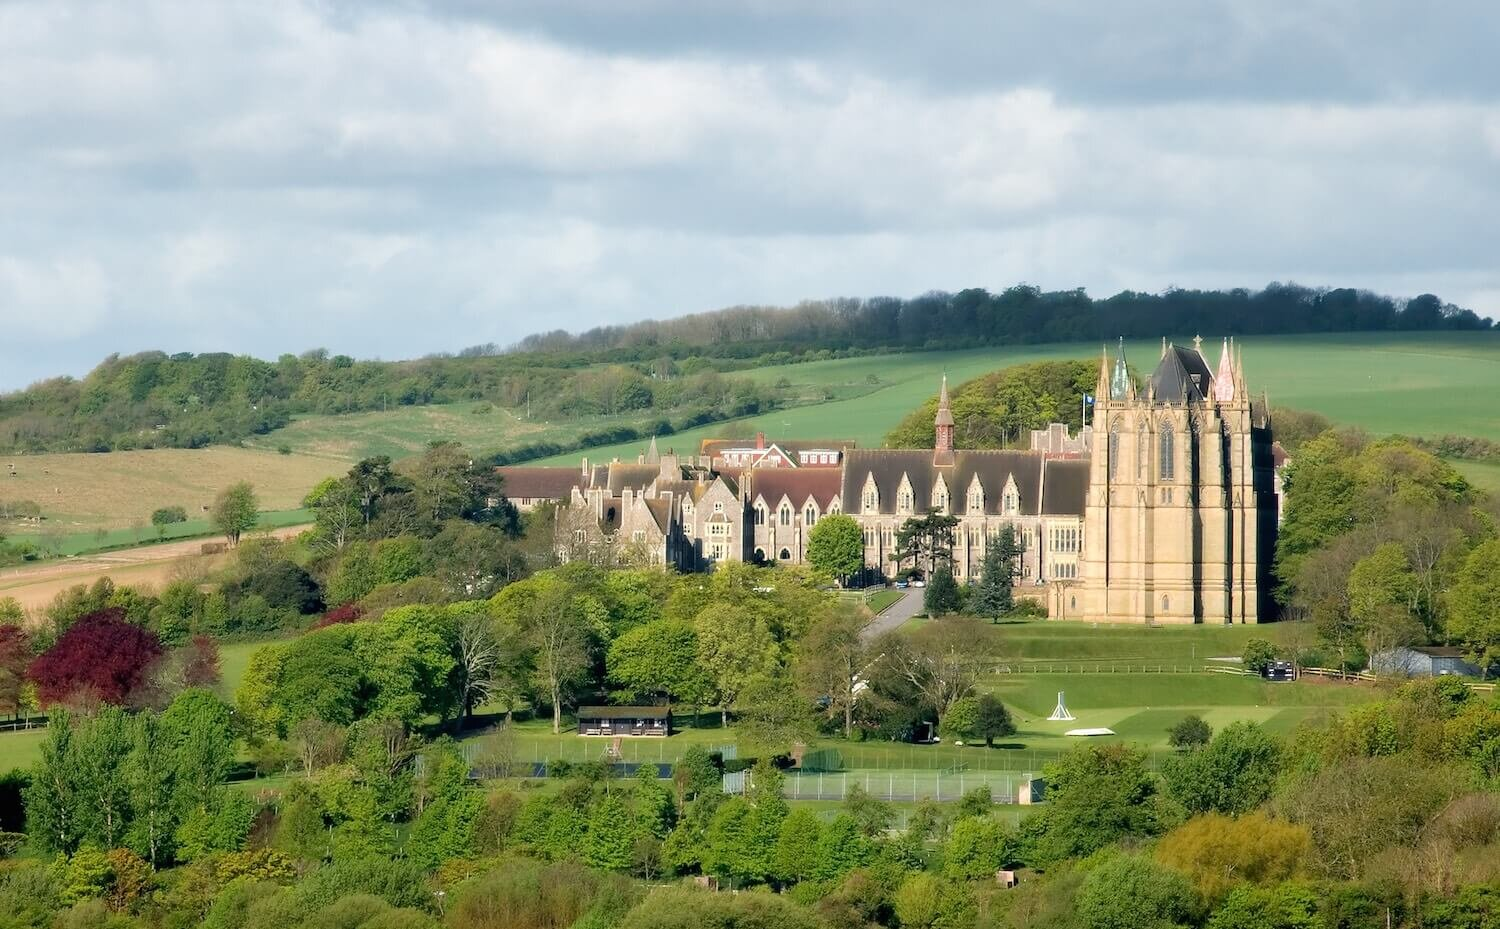 Lancing college venue in south uk for nike hockey camps